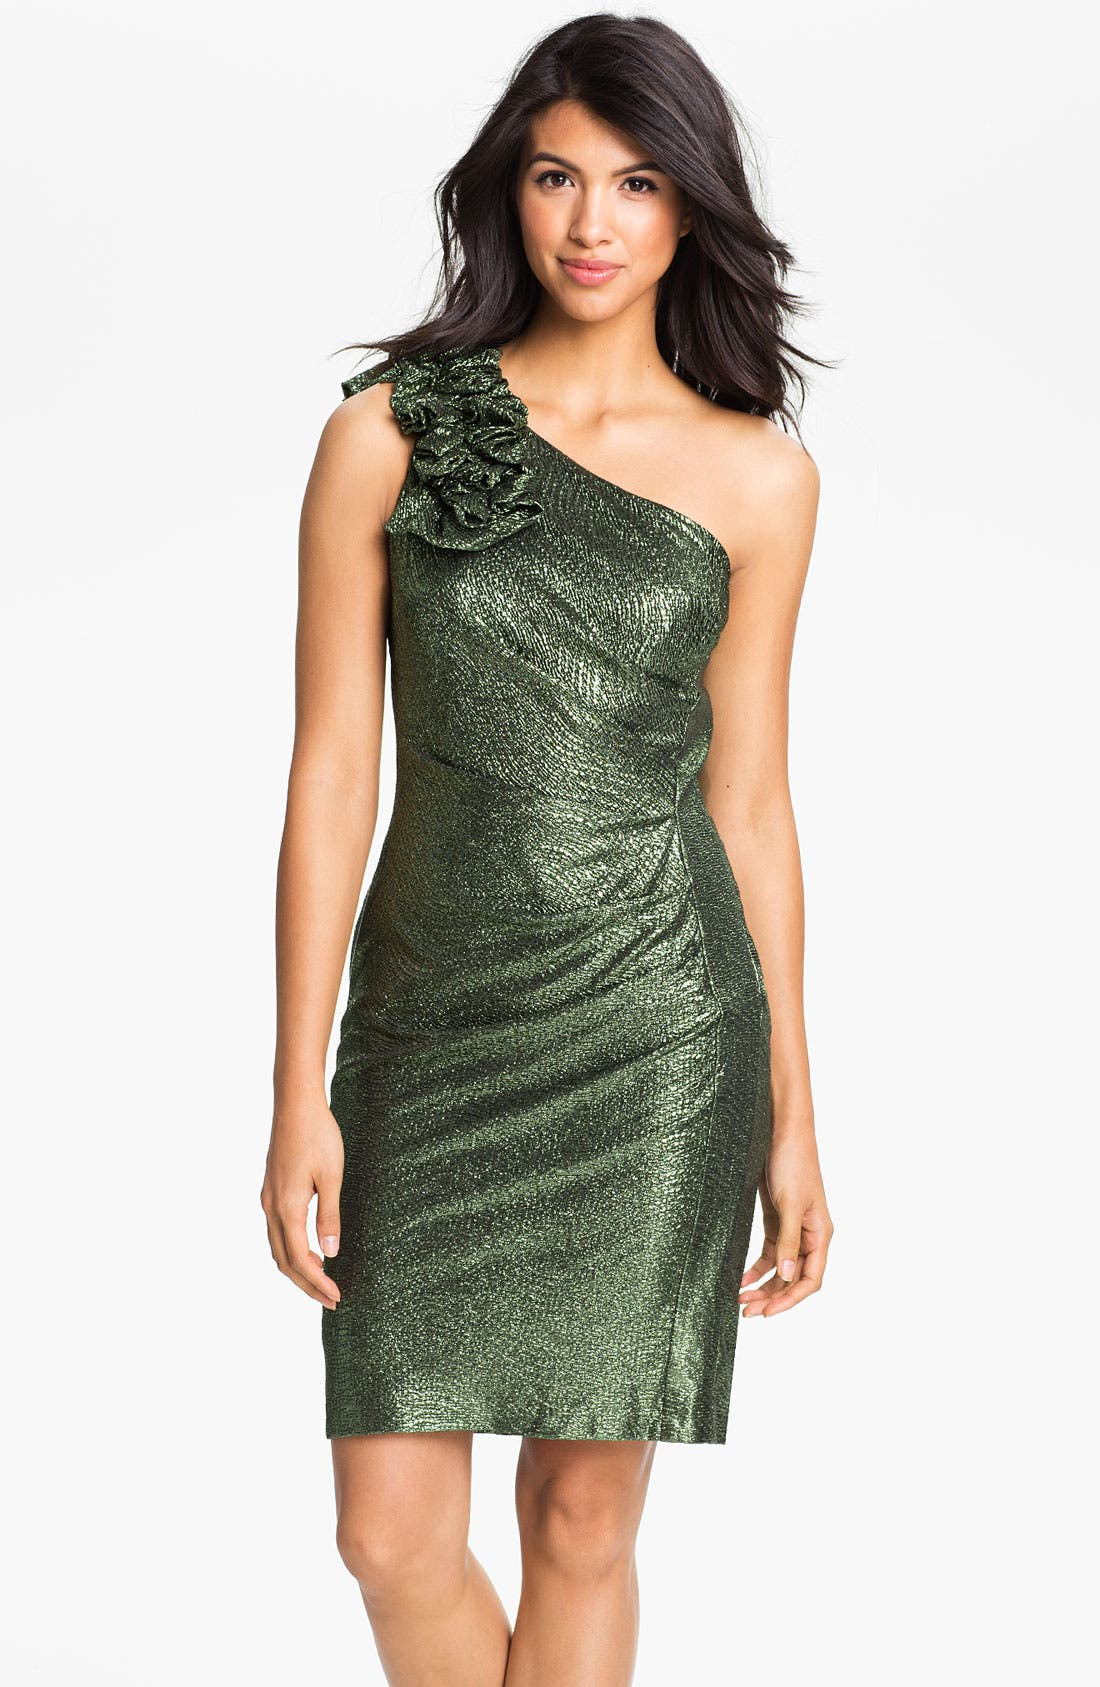 Alternate Image 1 Selected - Hailey by Adrianna Papell Metallic One Shoulder Sheath Dress